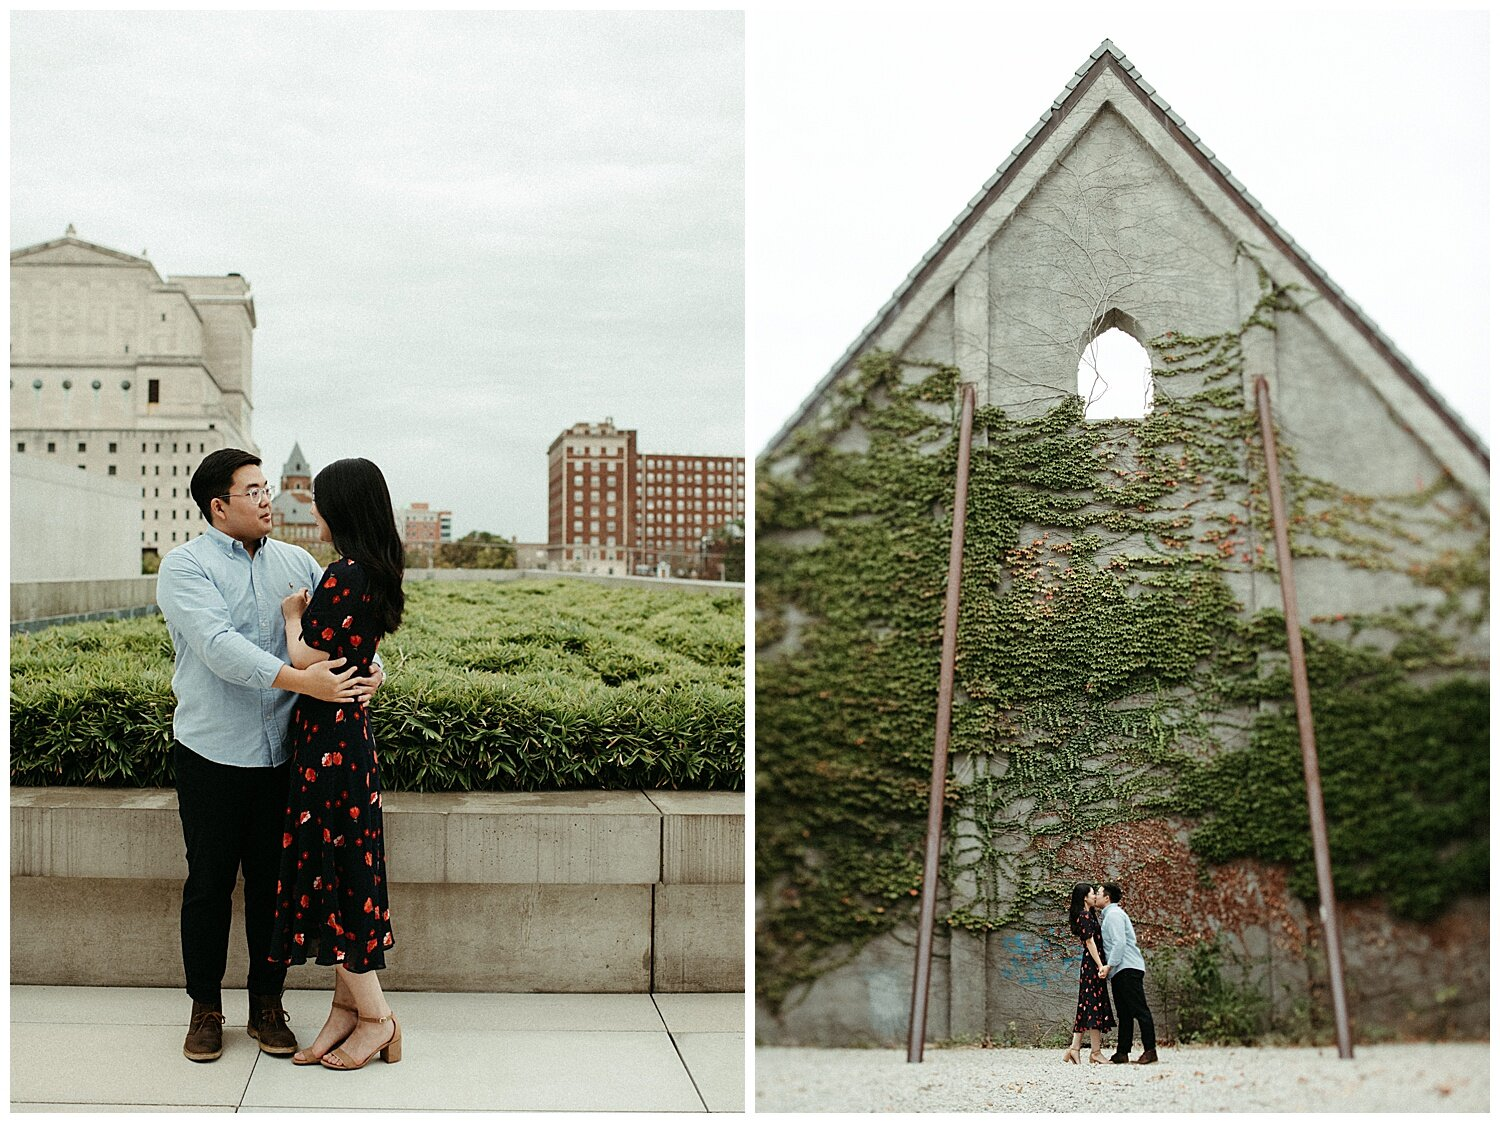 Contemporary Art Museum St Louis Engagement - Zach and Rosalie Wedding Photography - St Louis Wedding Photography_0016.jpg